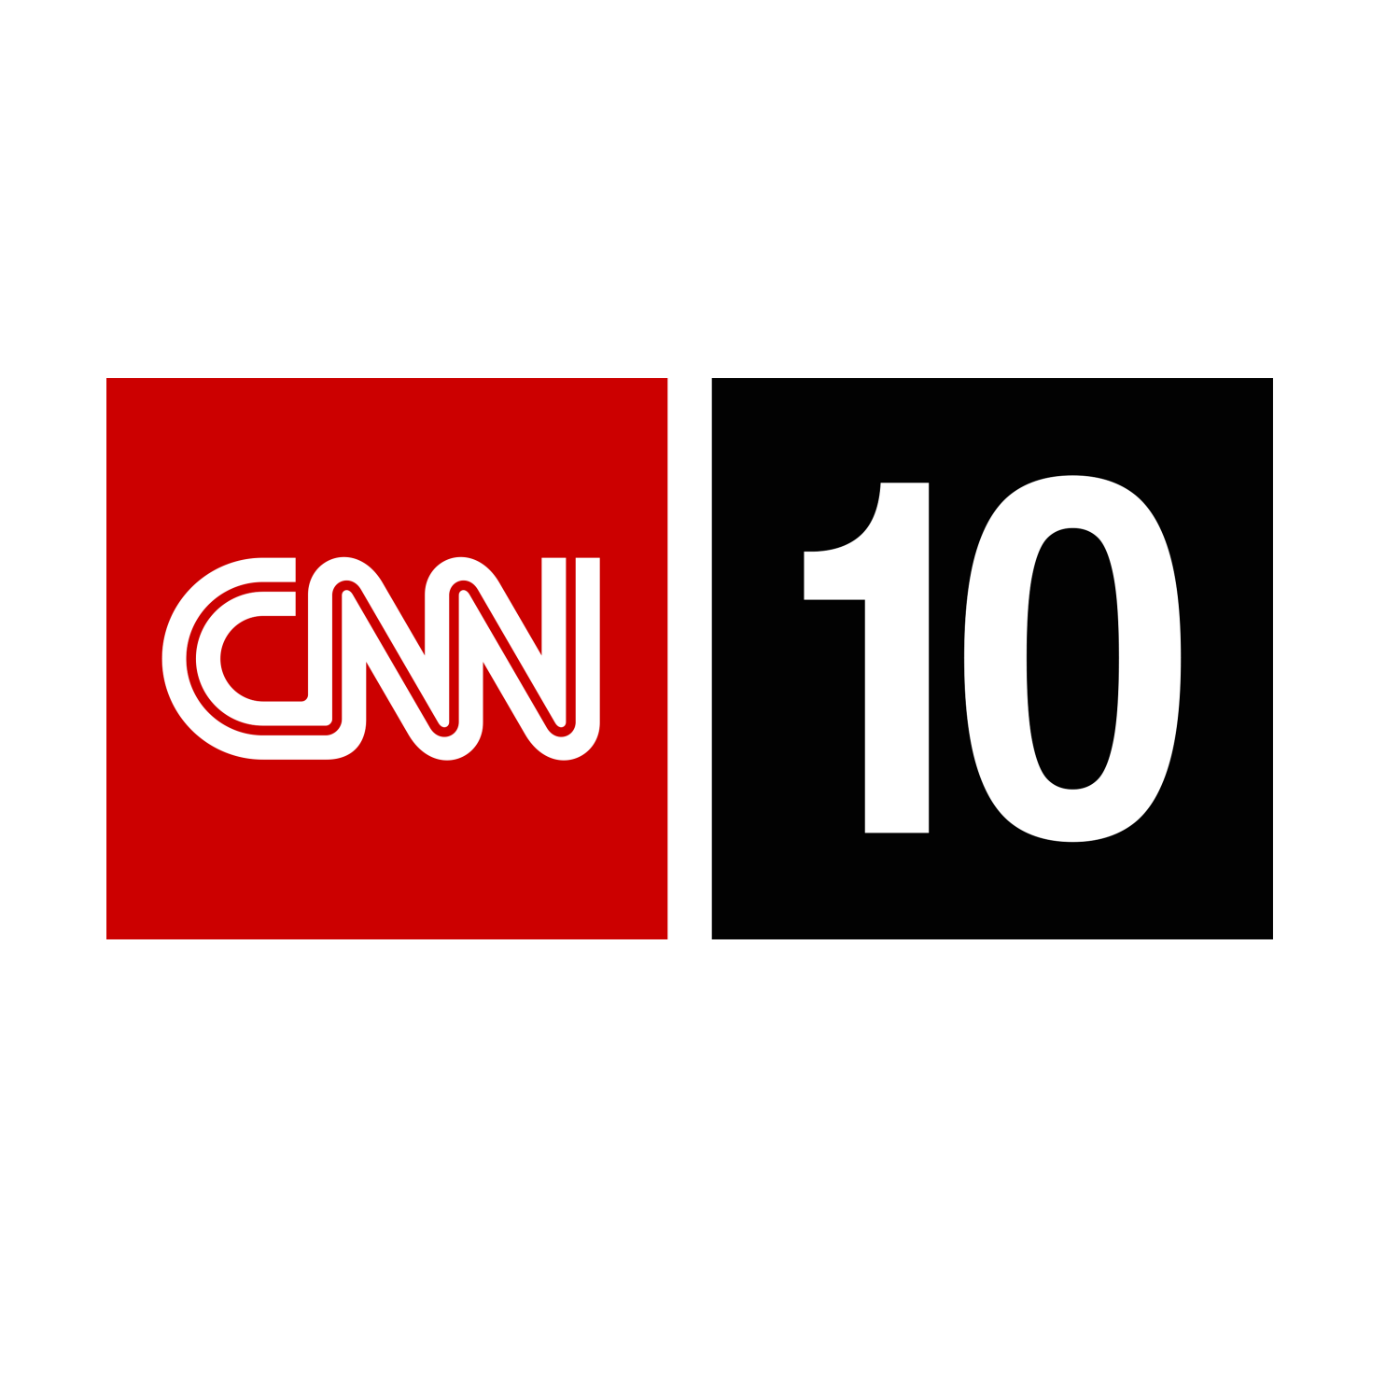 CNN Student News - May 8, 2013